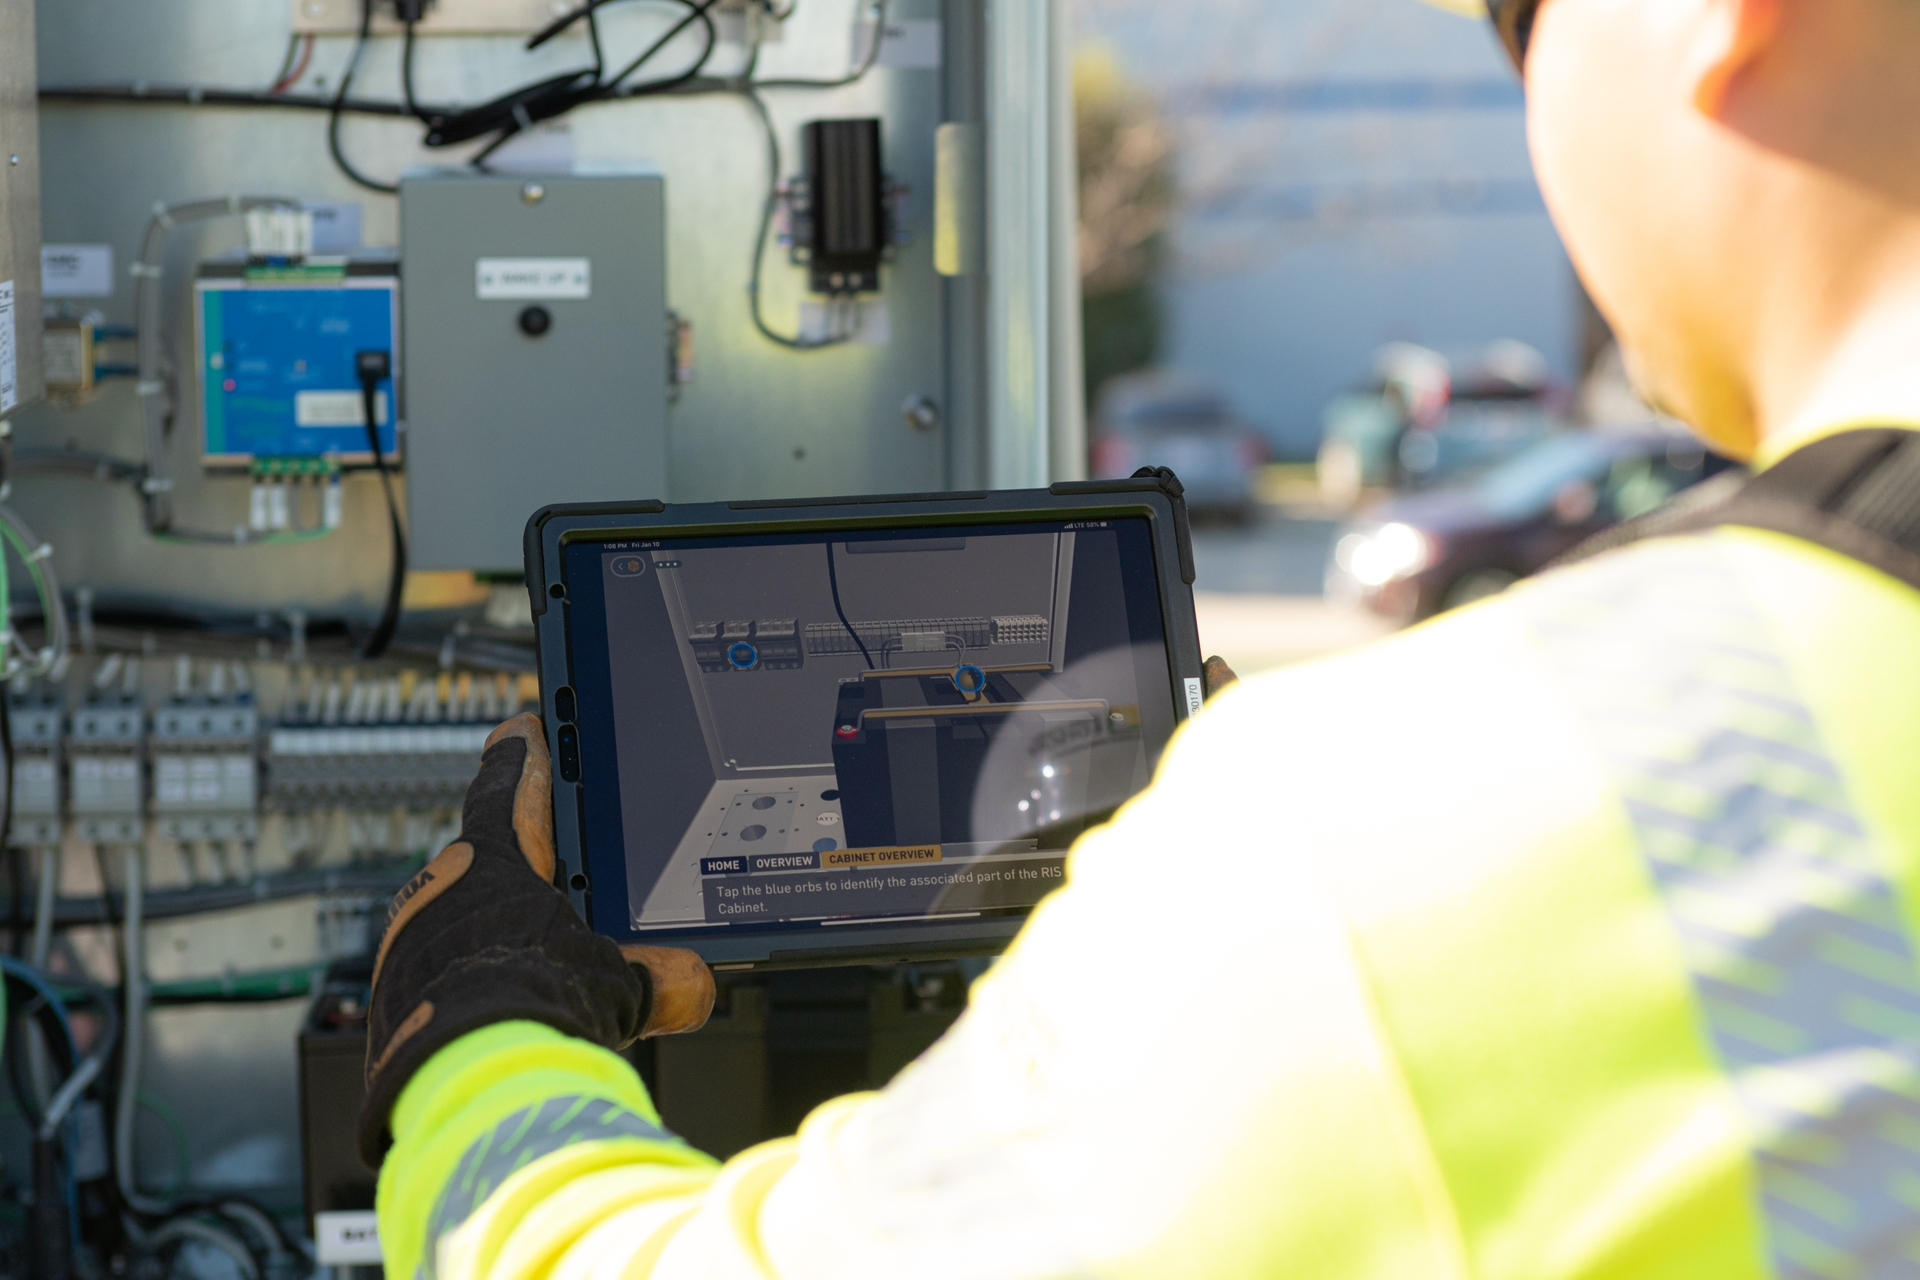 An SCE lineman uses AR technology to help diagnose an electrical equipment issue.